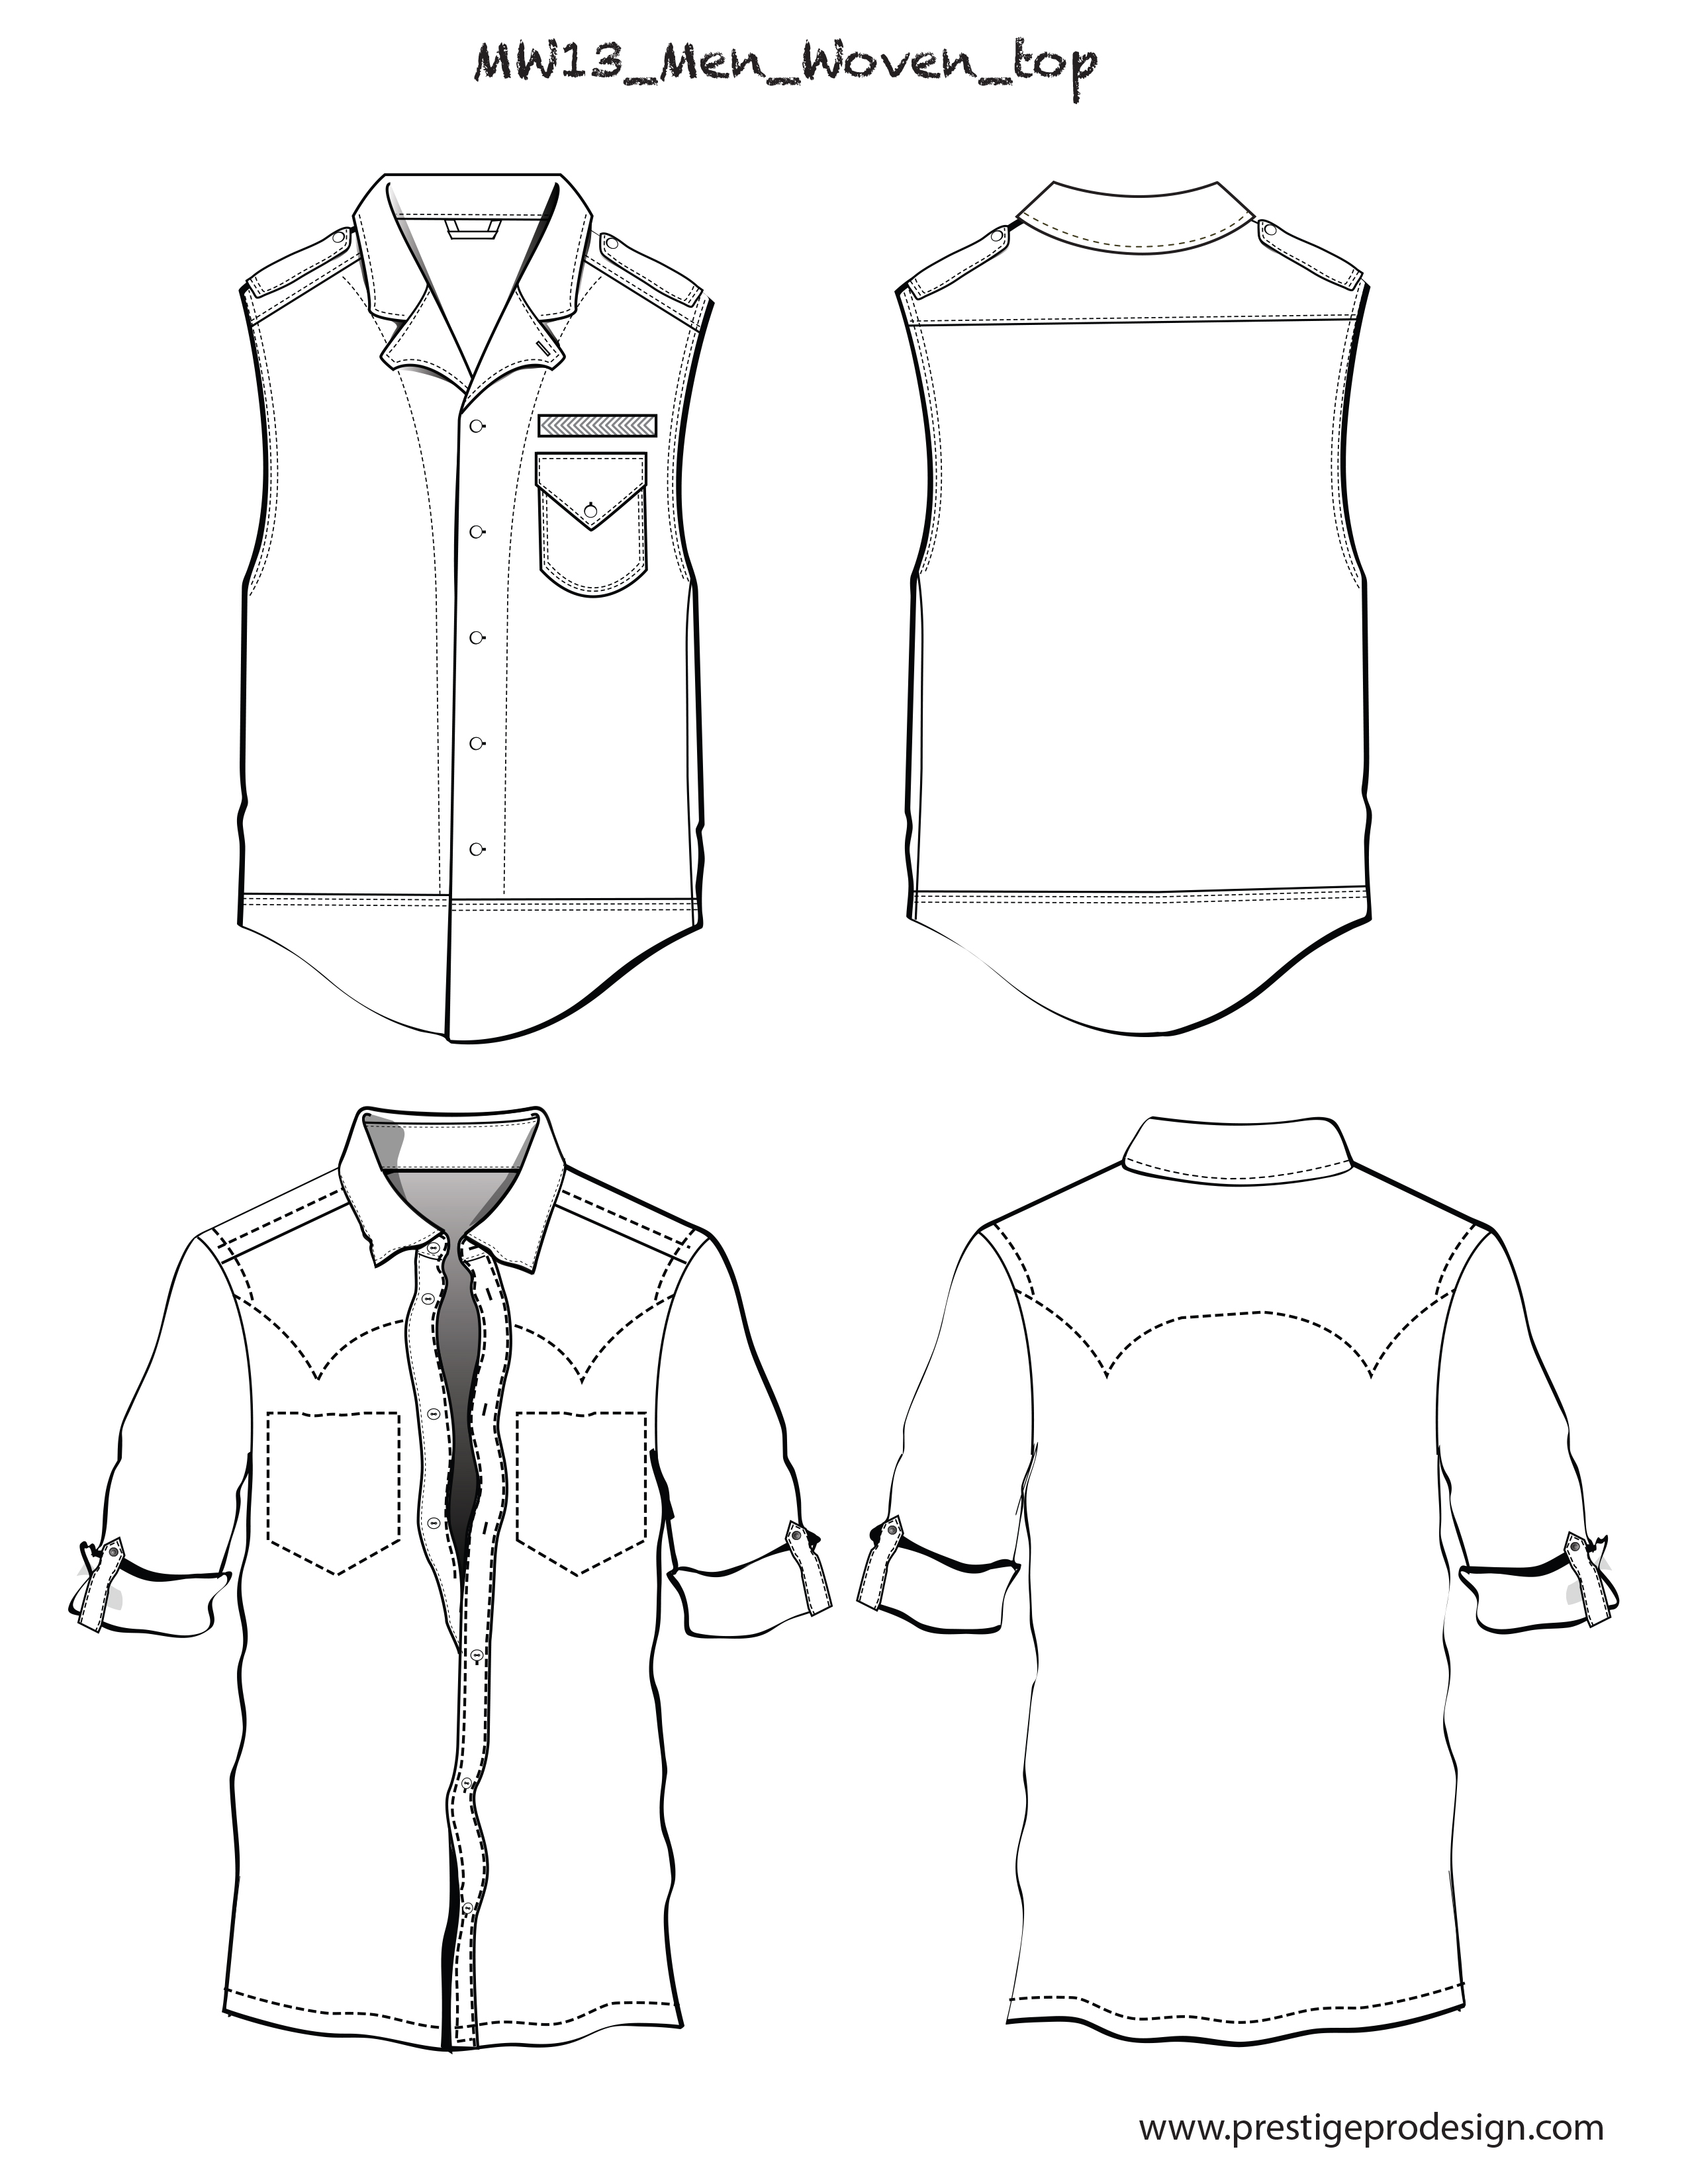 Men flat sketches for Woven Tops - PrestigeProDesign.com Page on